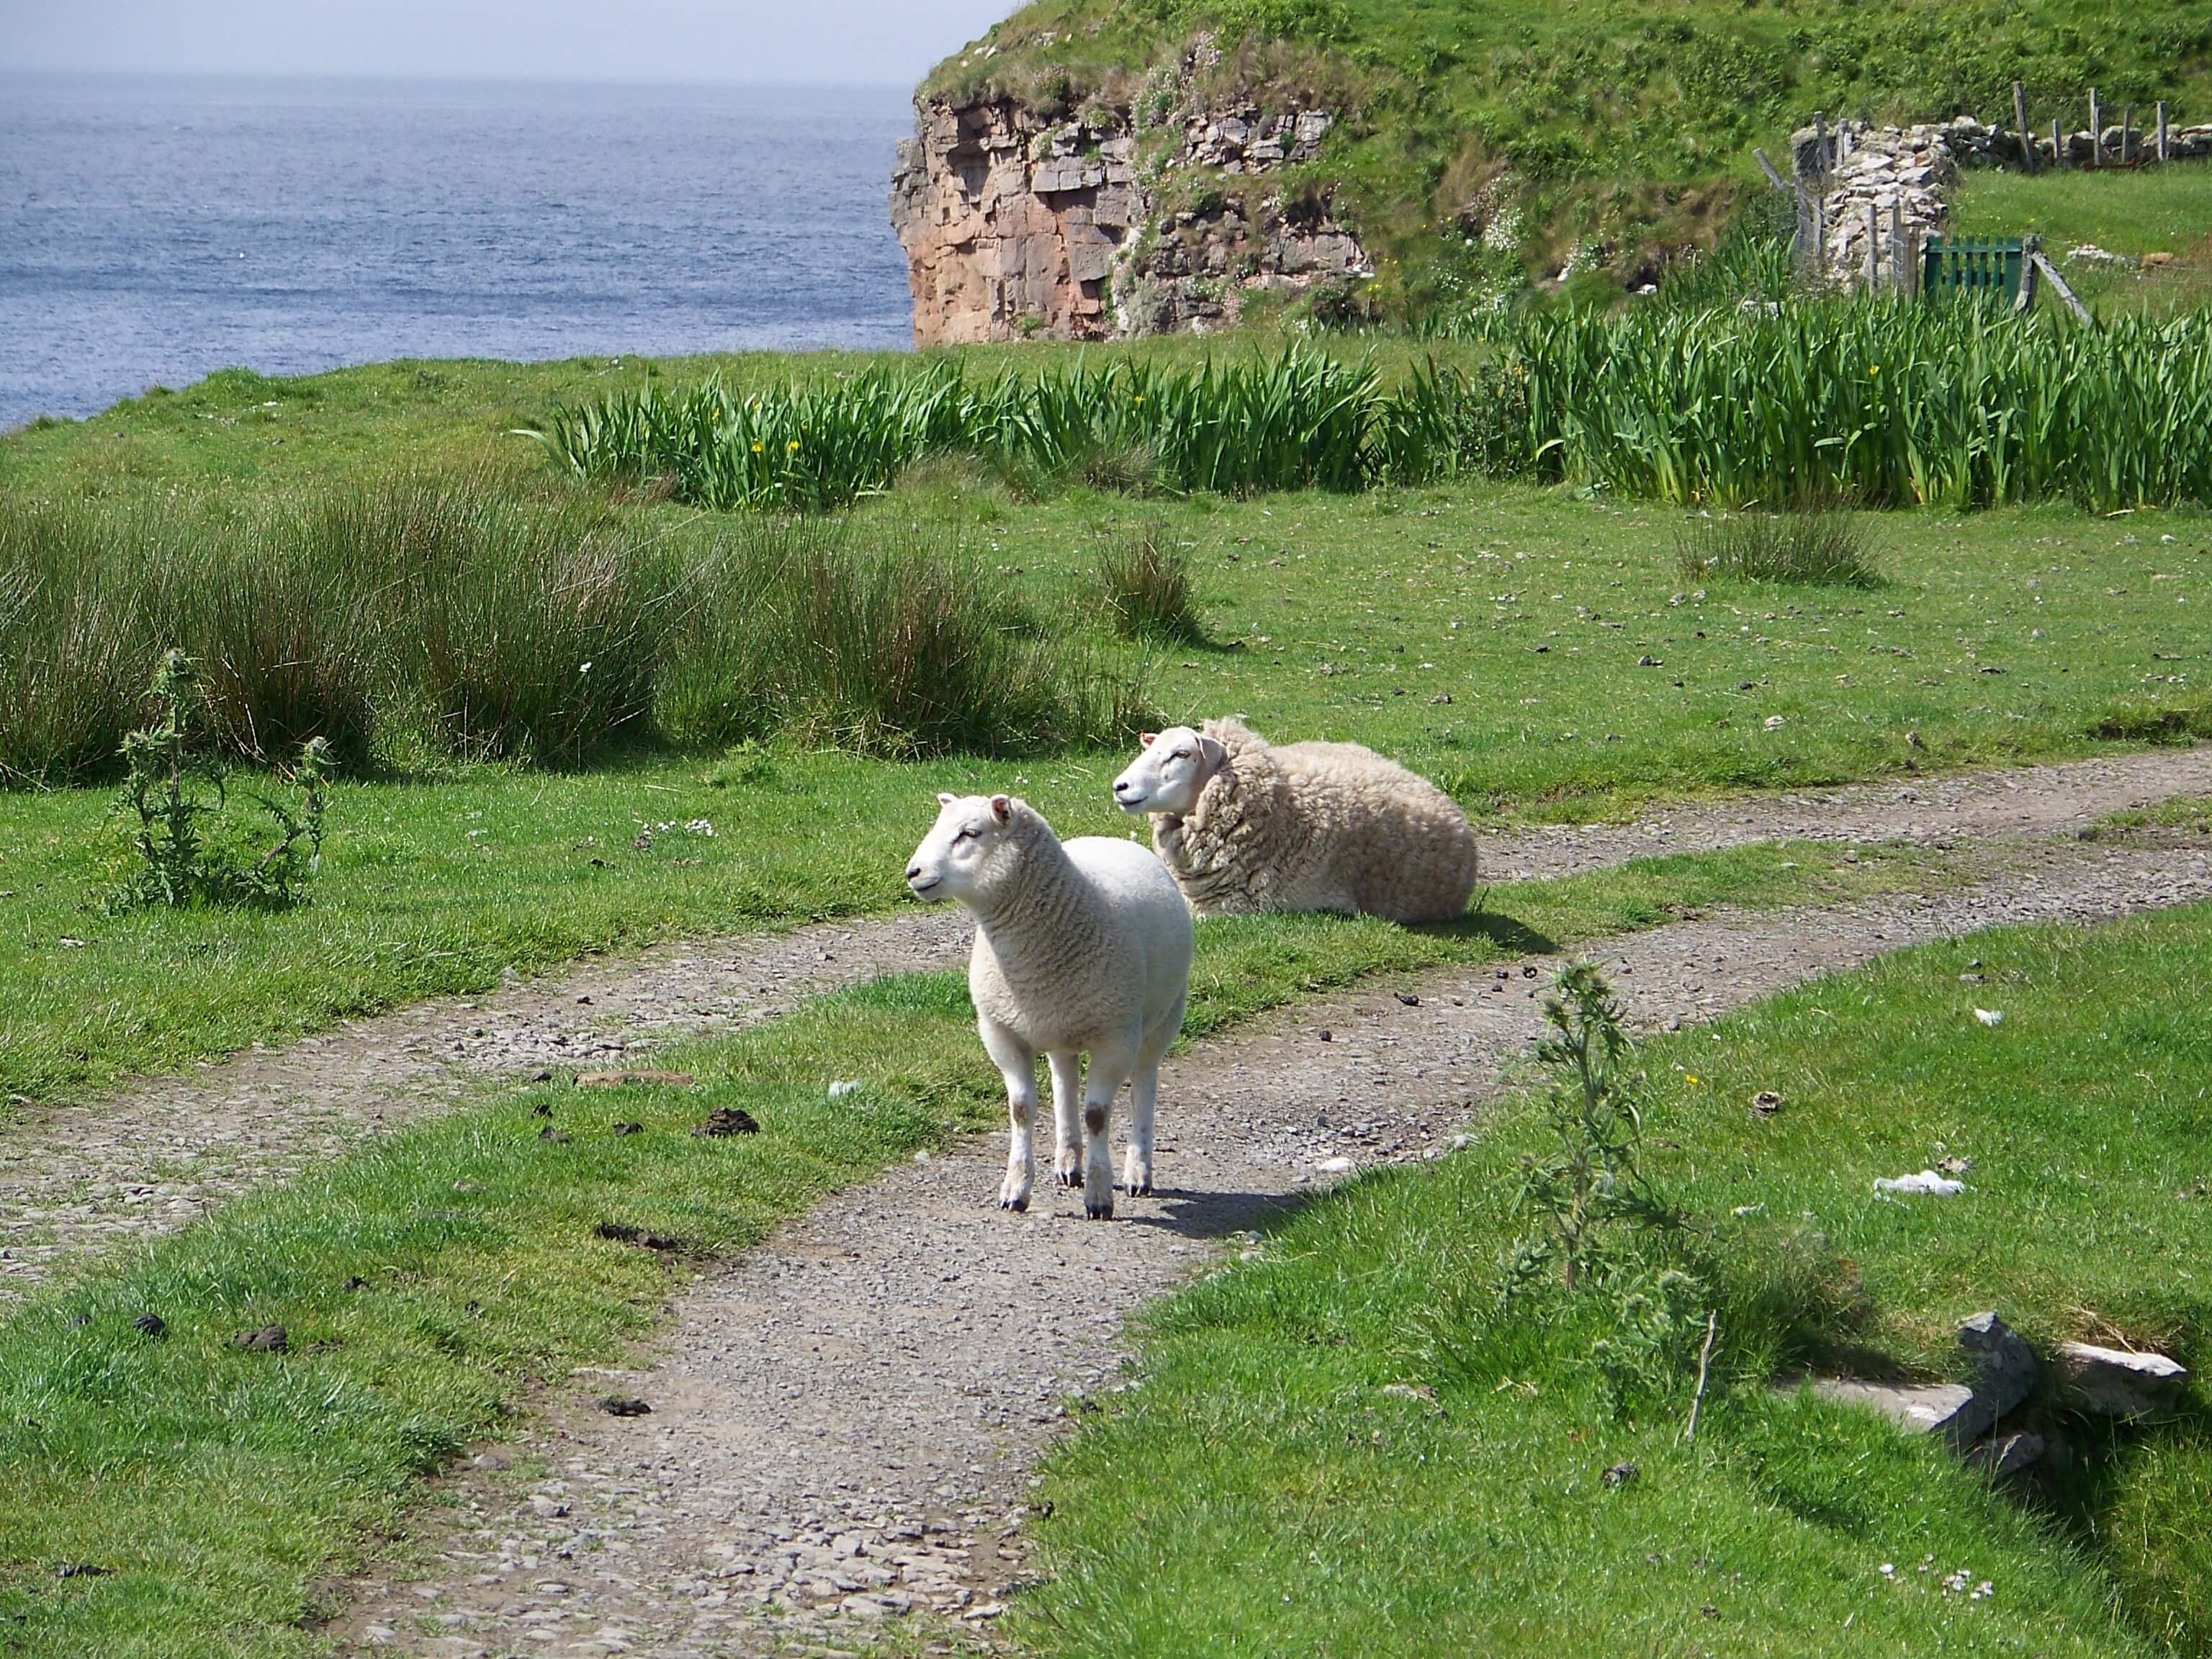 Sheep lounging in the sun in Hoy, Orkney